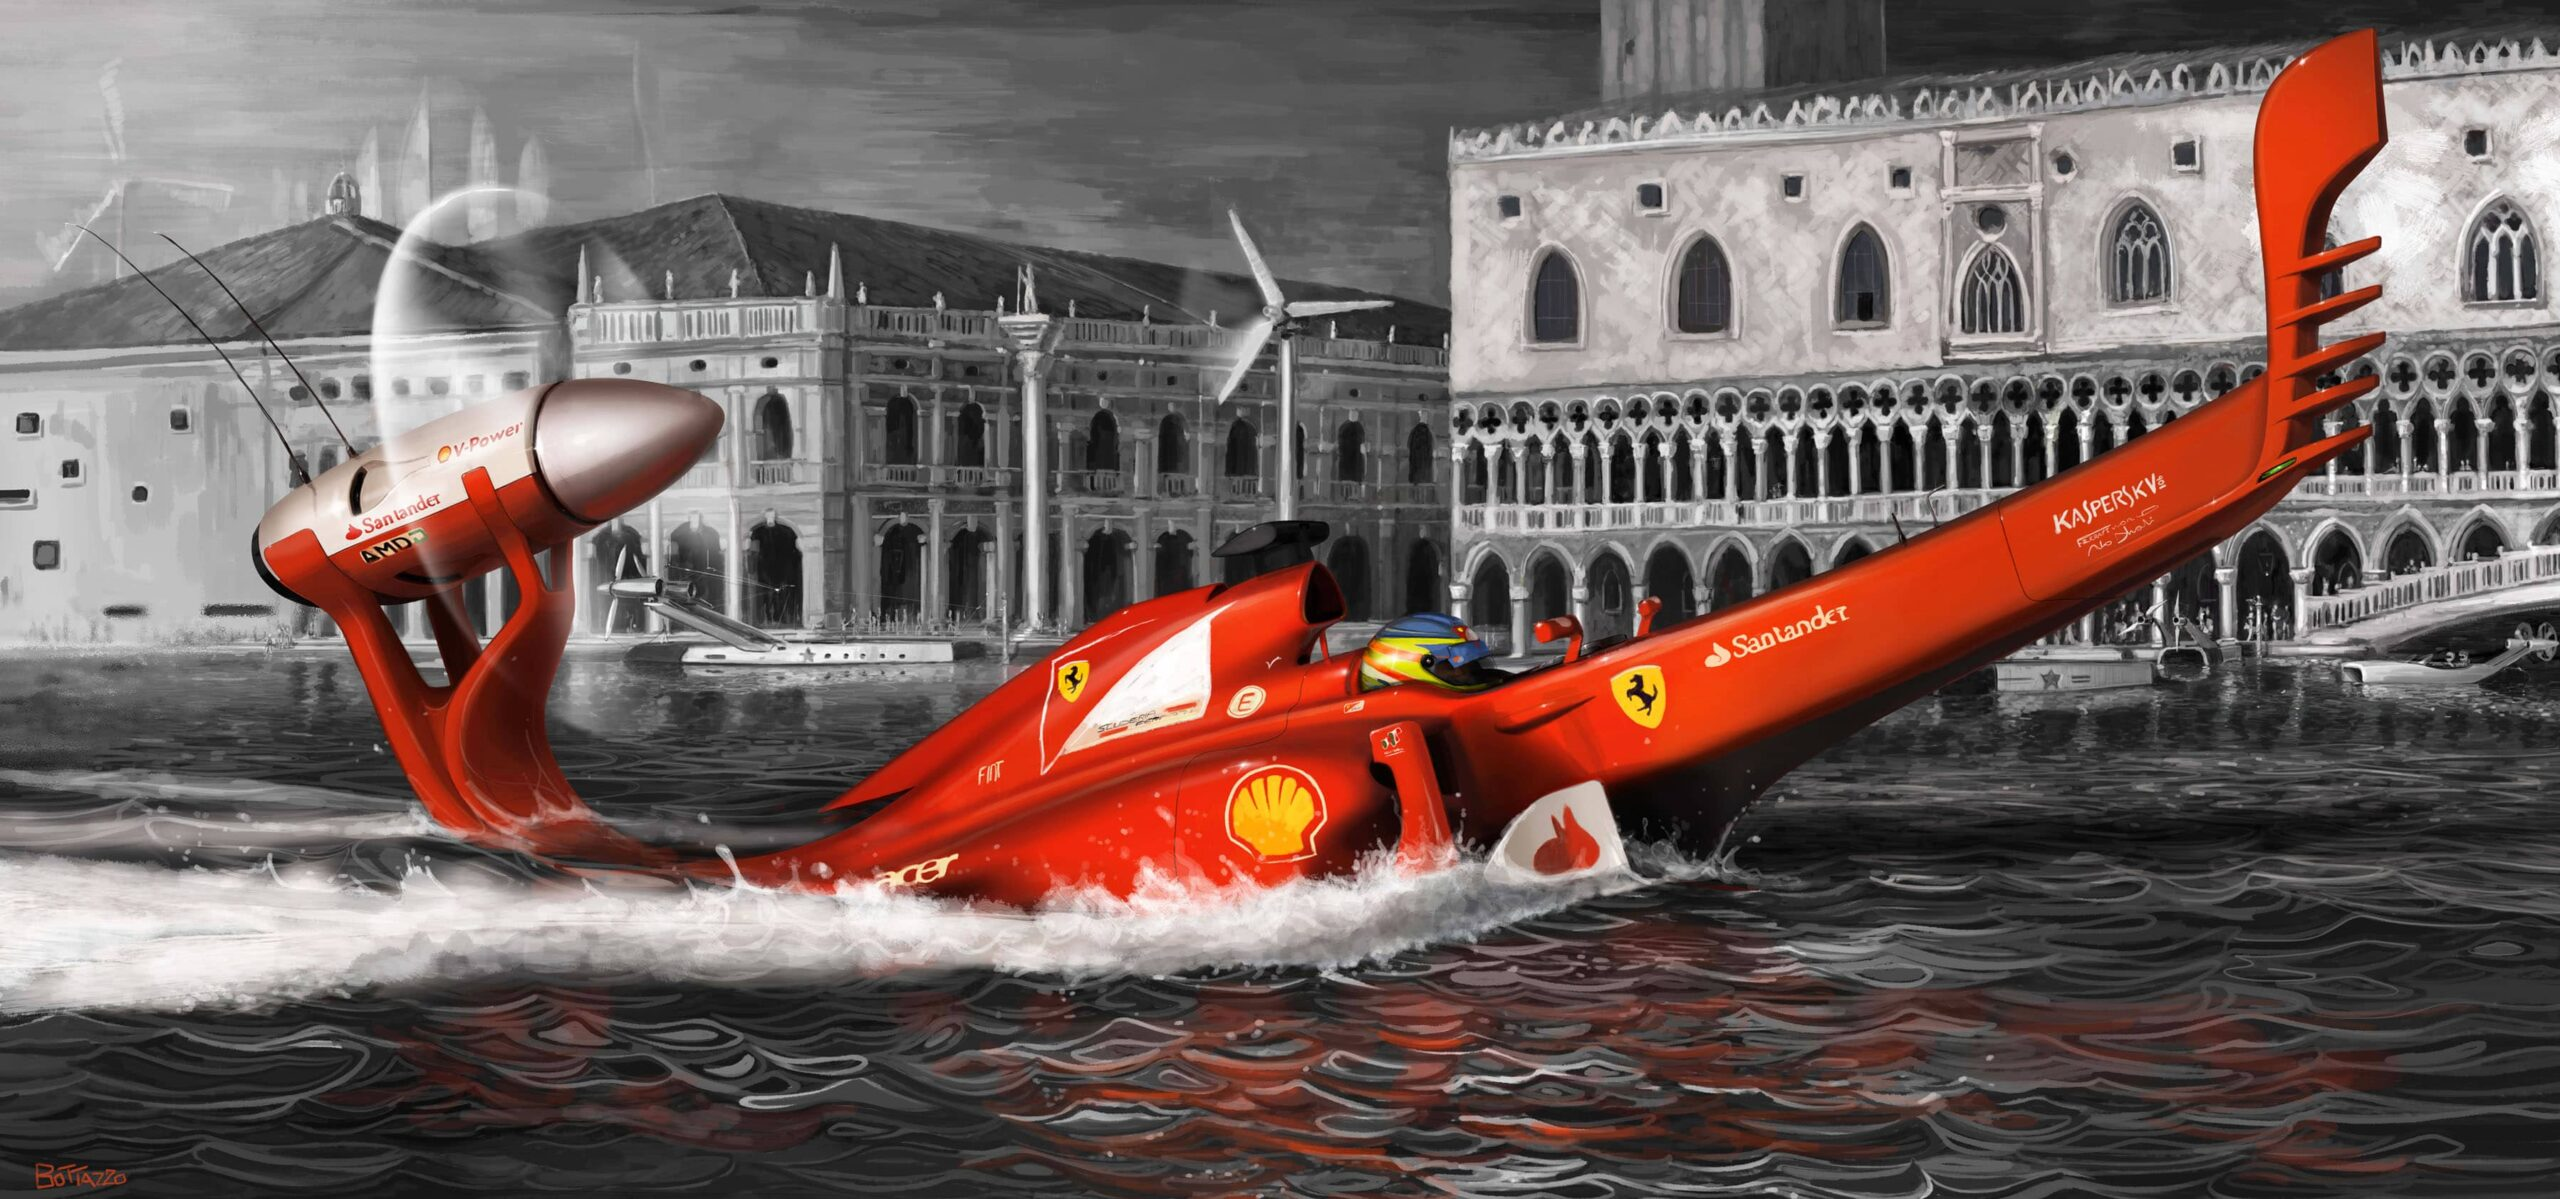 ROSSO SAN MARCO